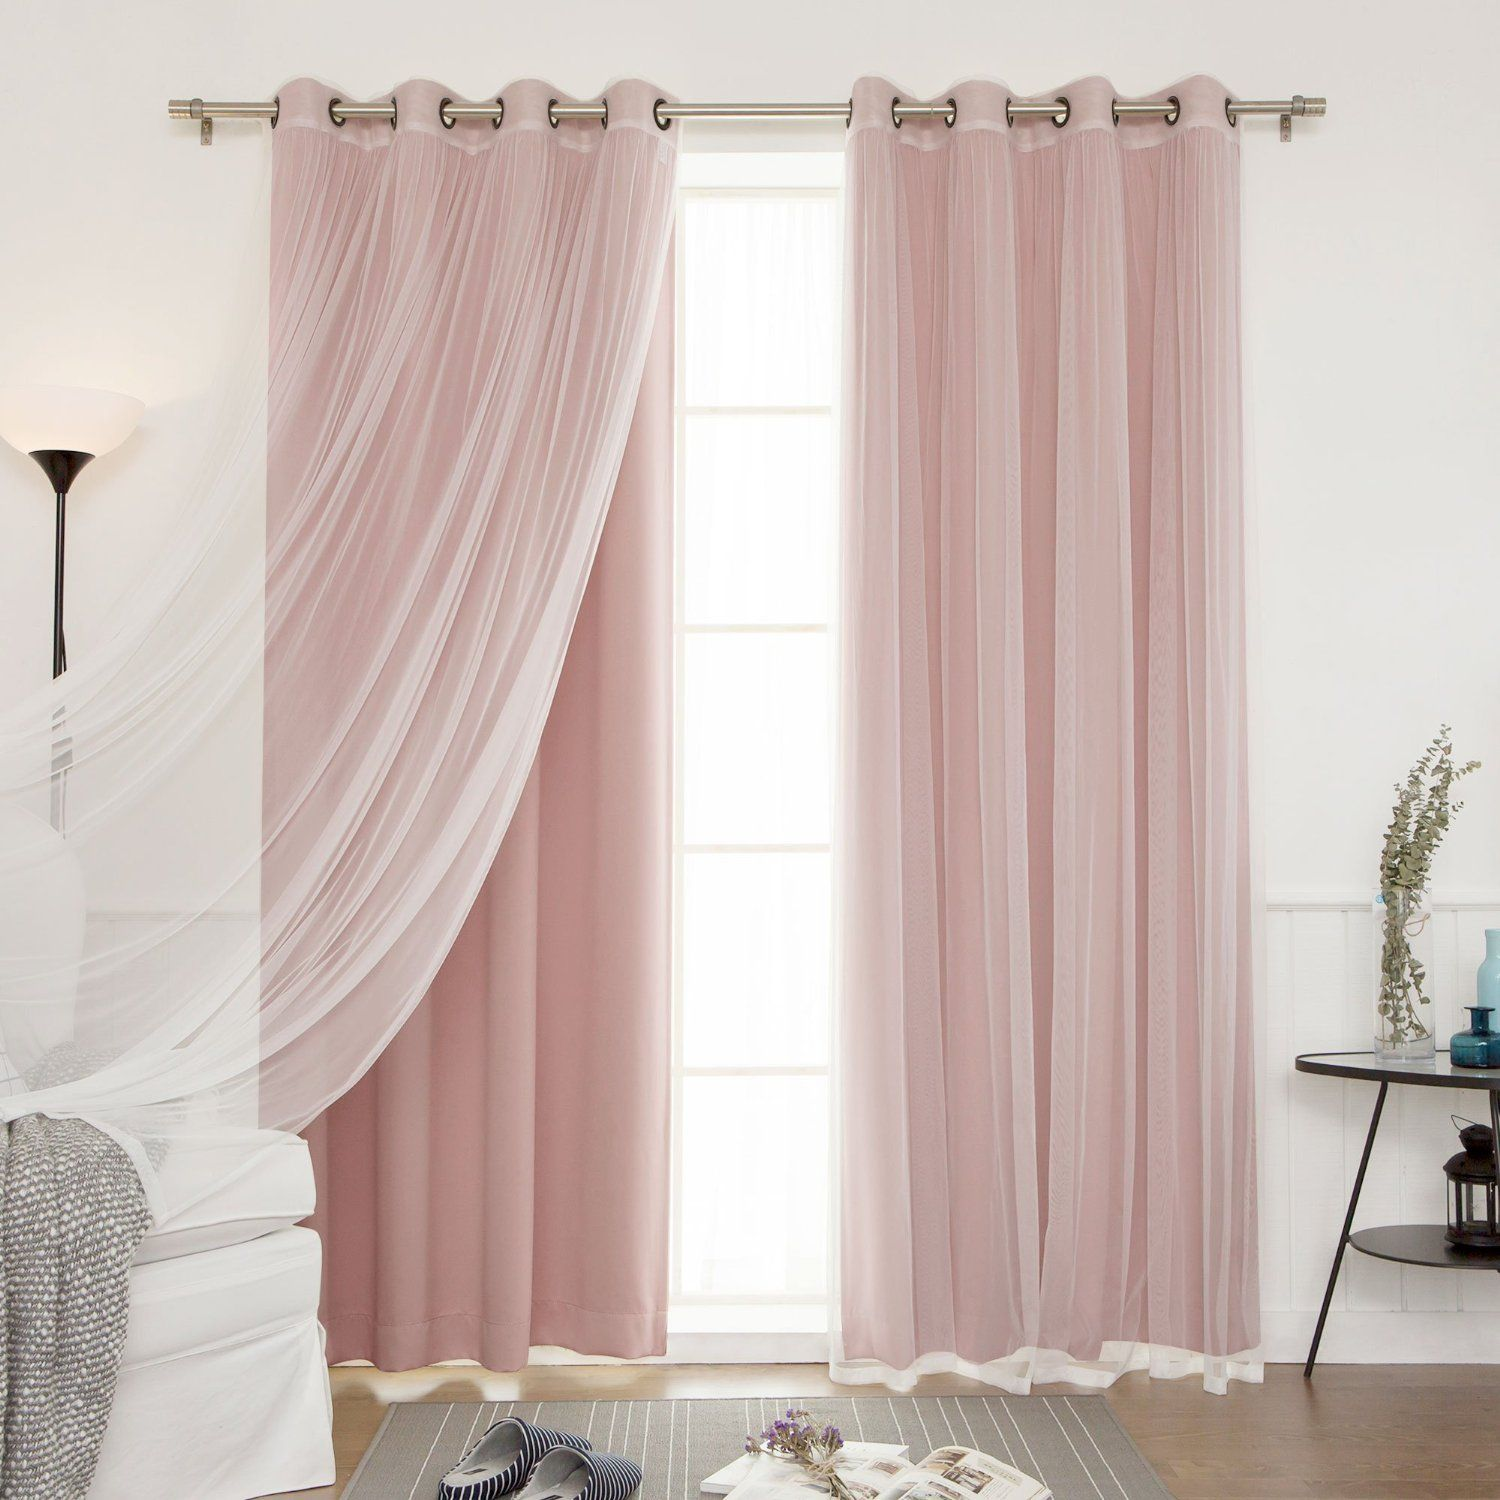 Star Blockout Romantic Curtains 2-Layers Eyelet Pure Fabric Bedroom Darkening